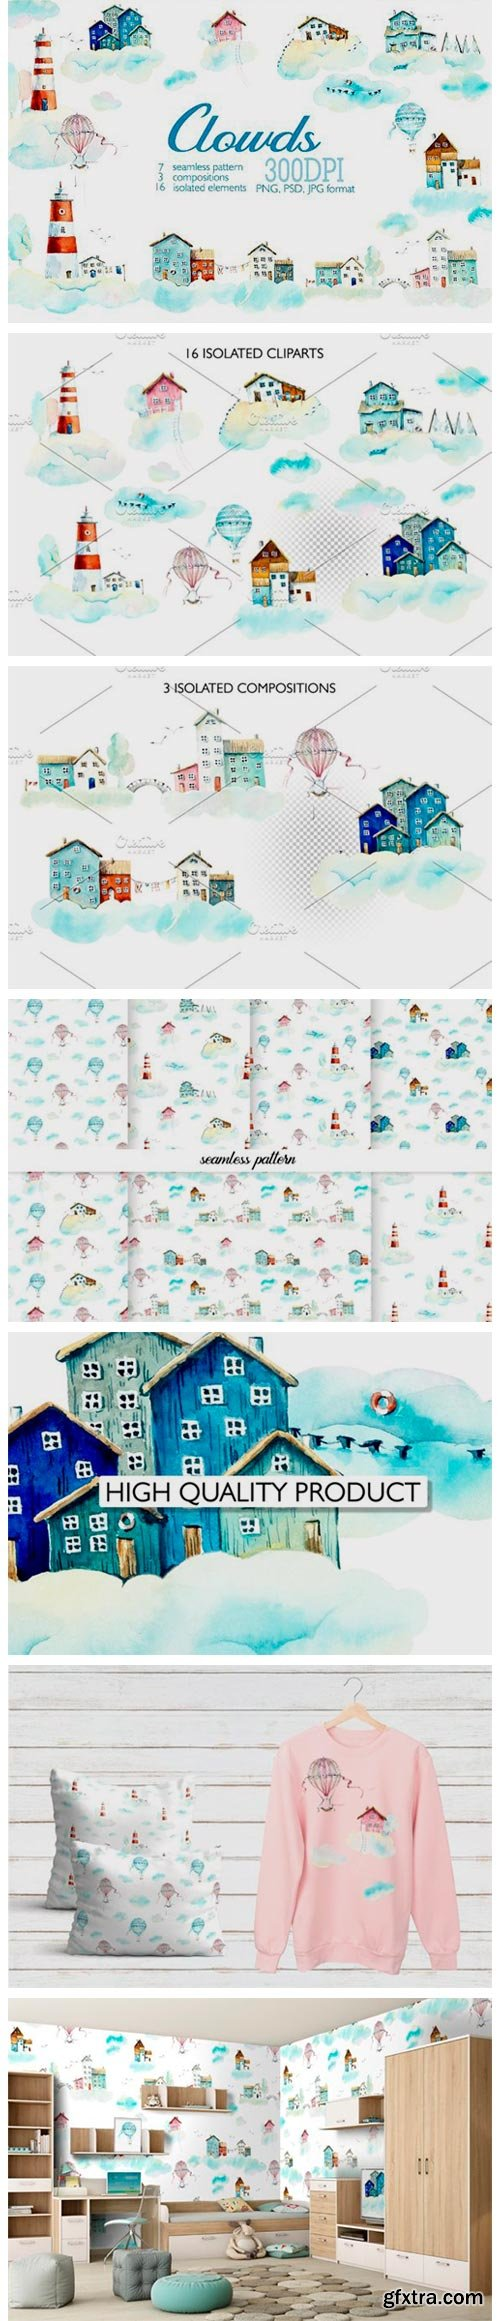 Watercolor Houses in Clouds 4165018